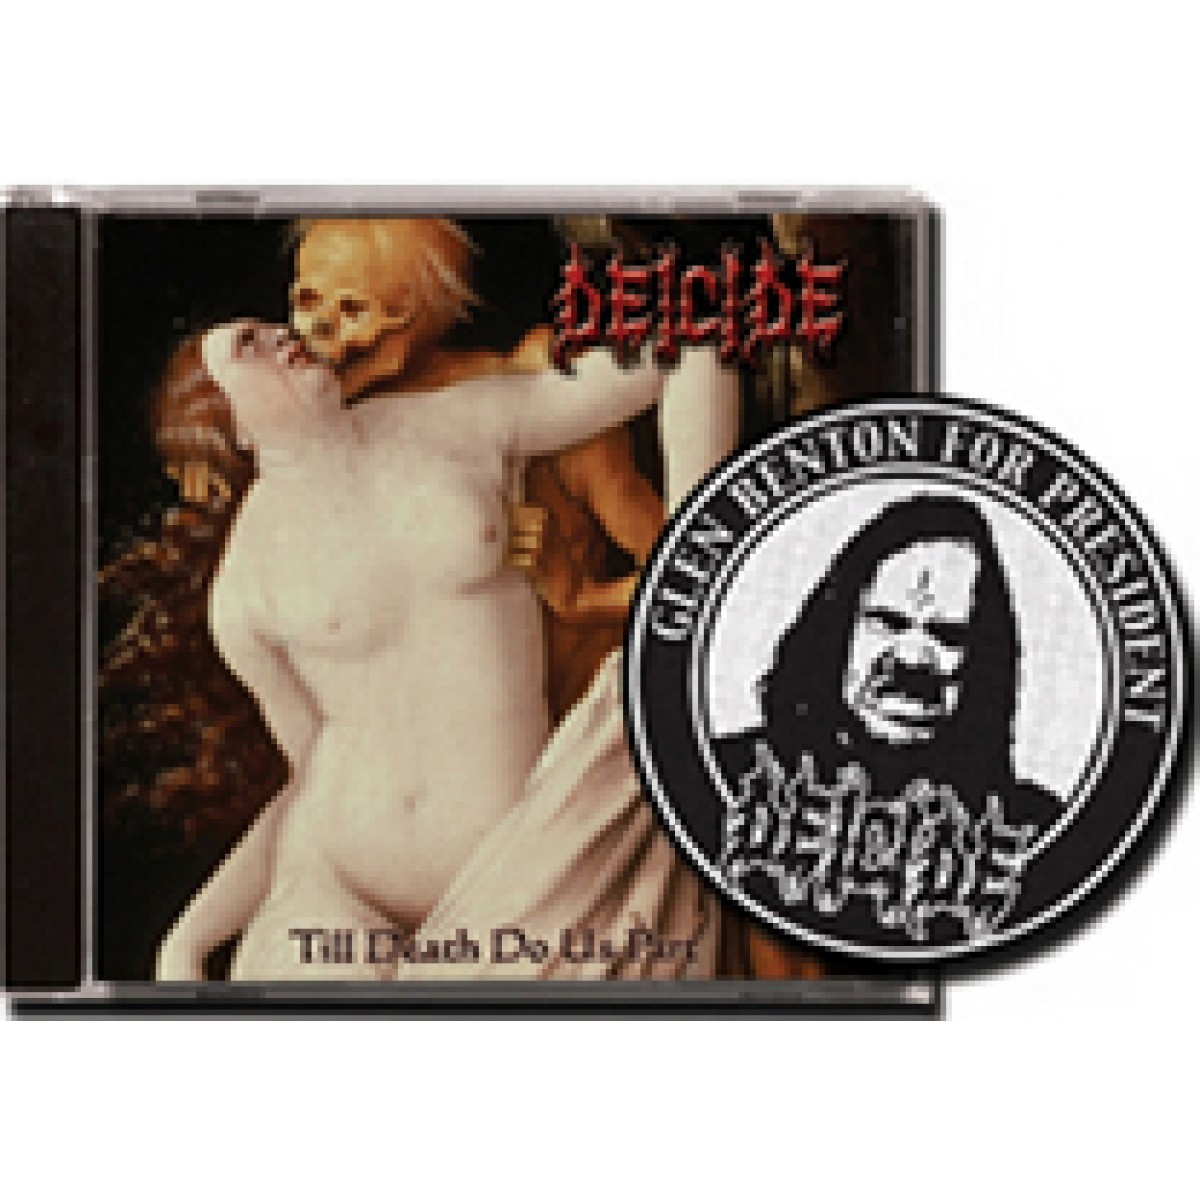 Deicide - 'Till Death Do Us Part  (Slipcase+Patch)